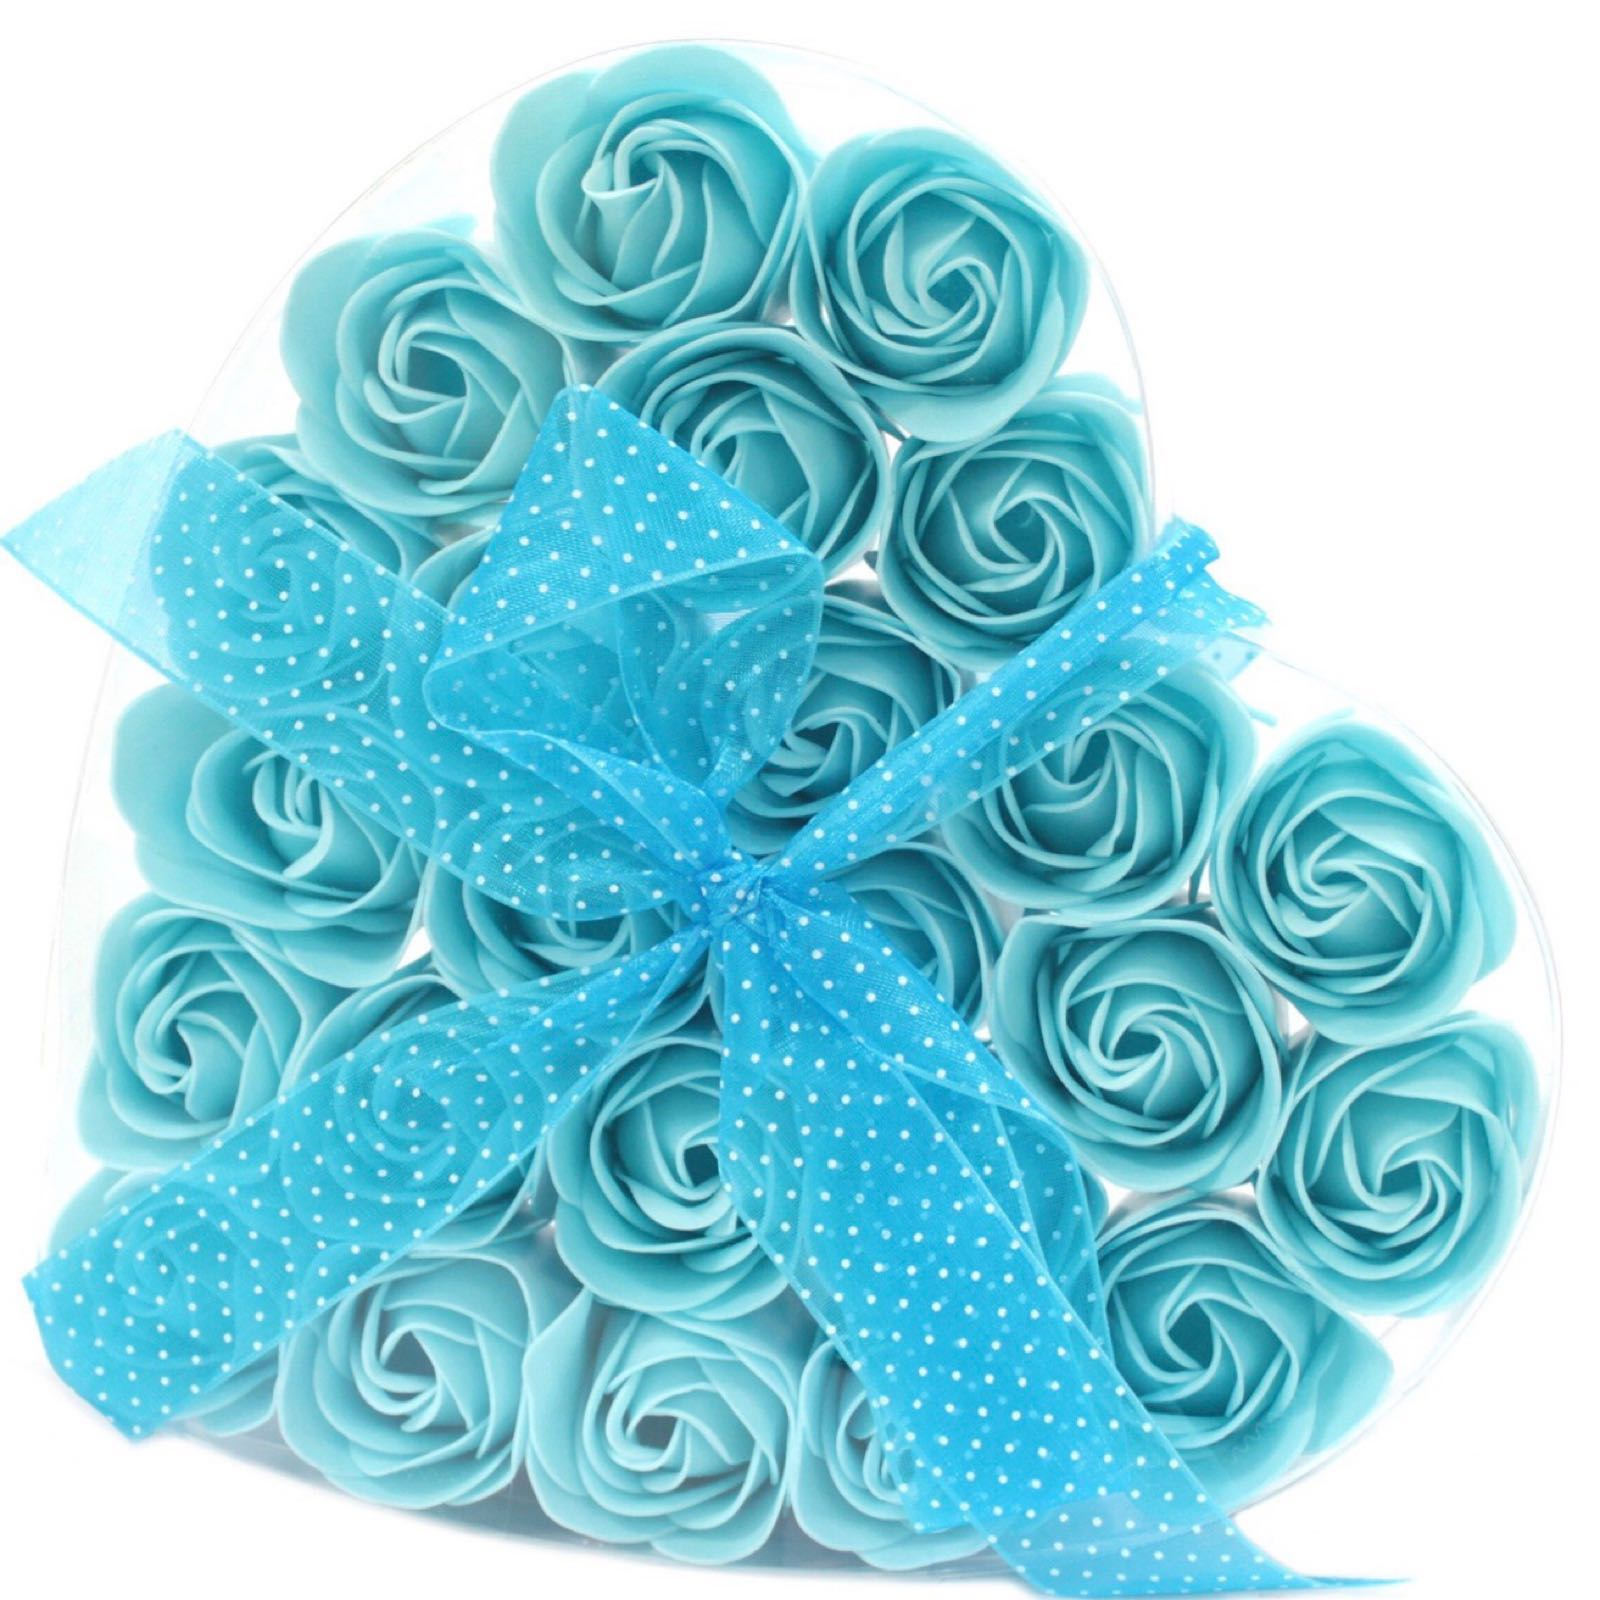 Soap Flower Heart Box - Blue Roses (Was £8.50)